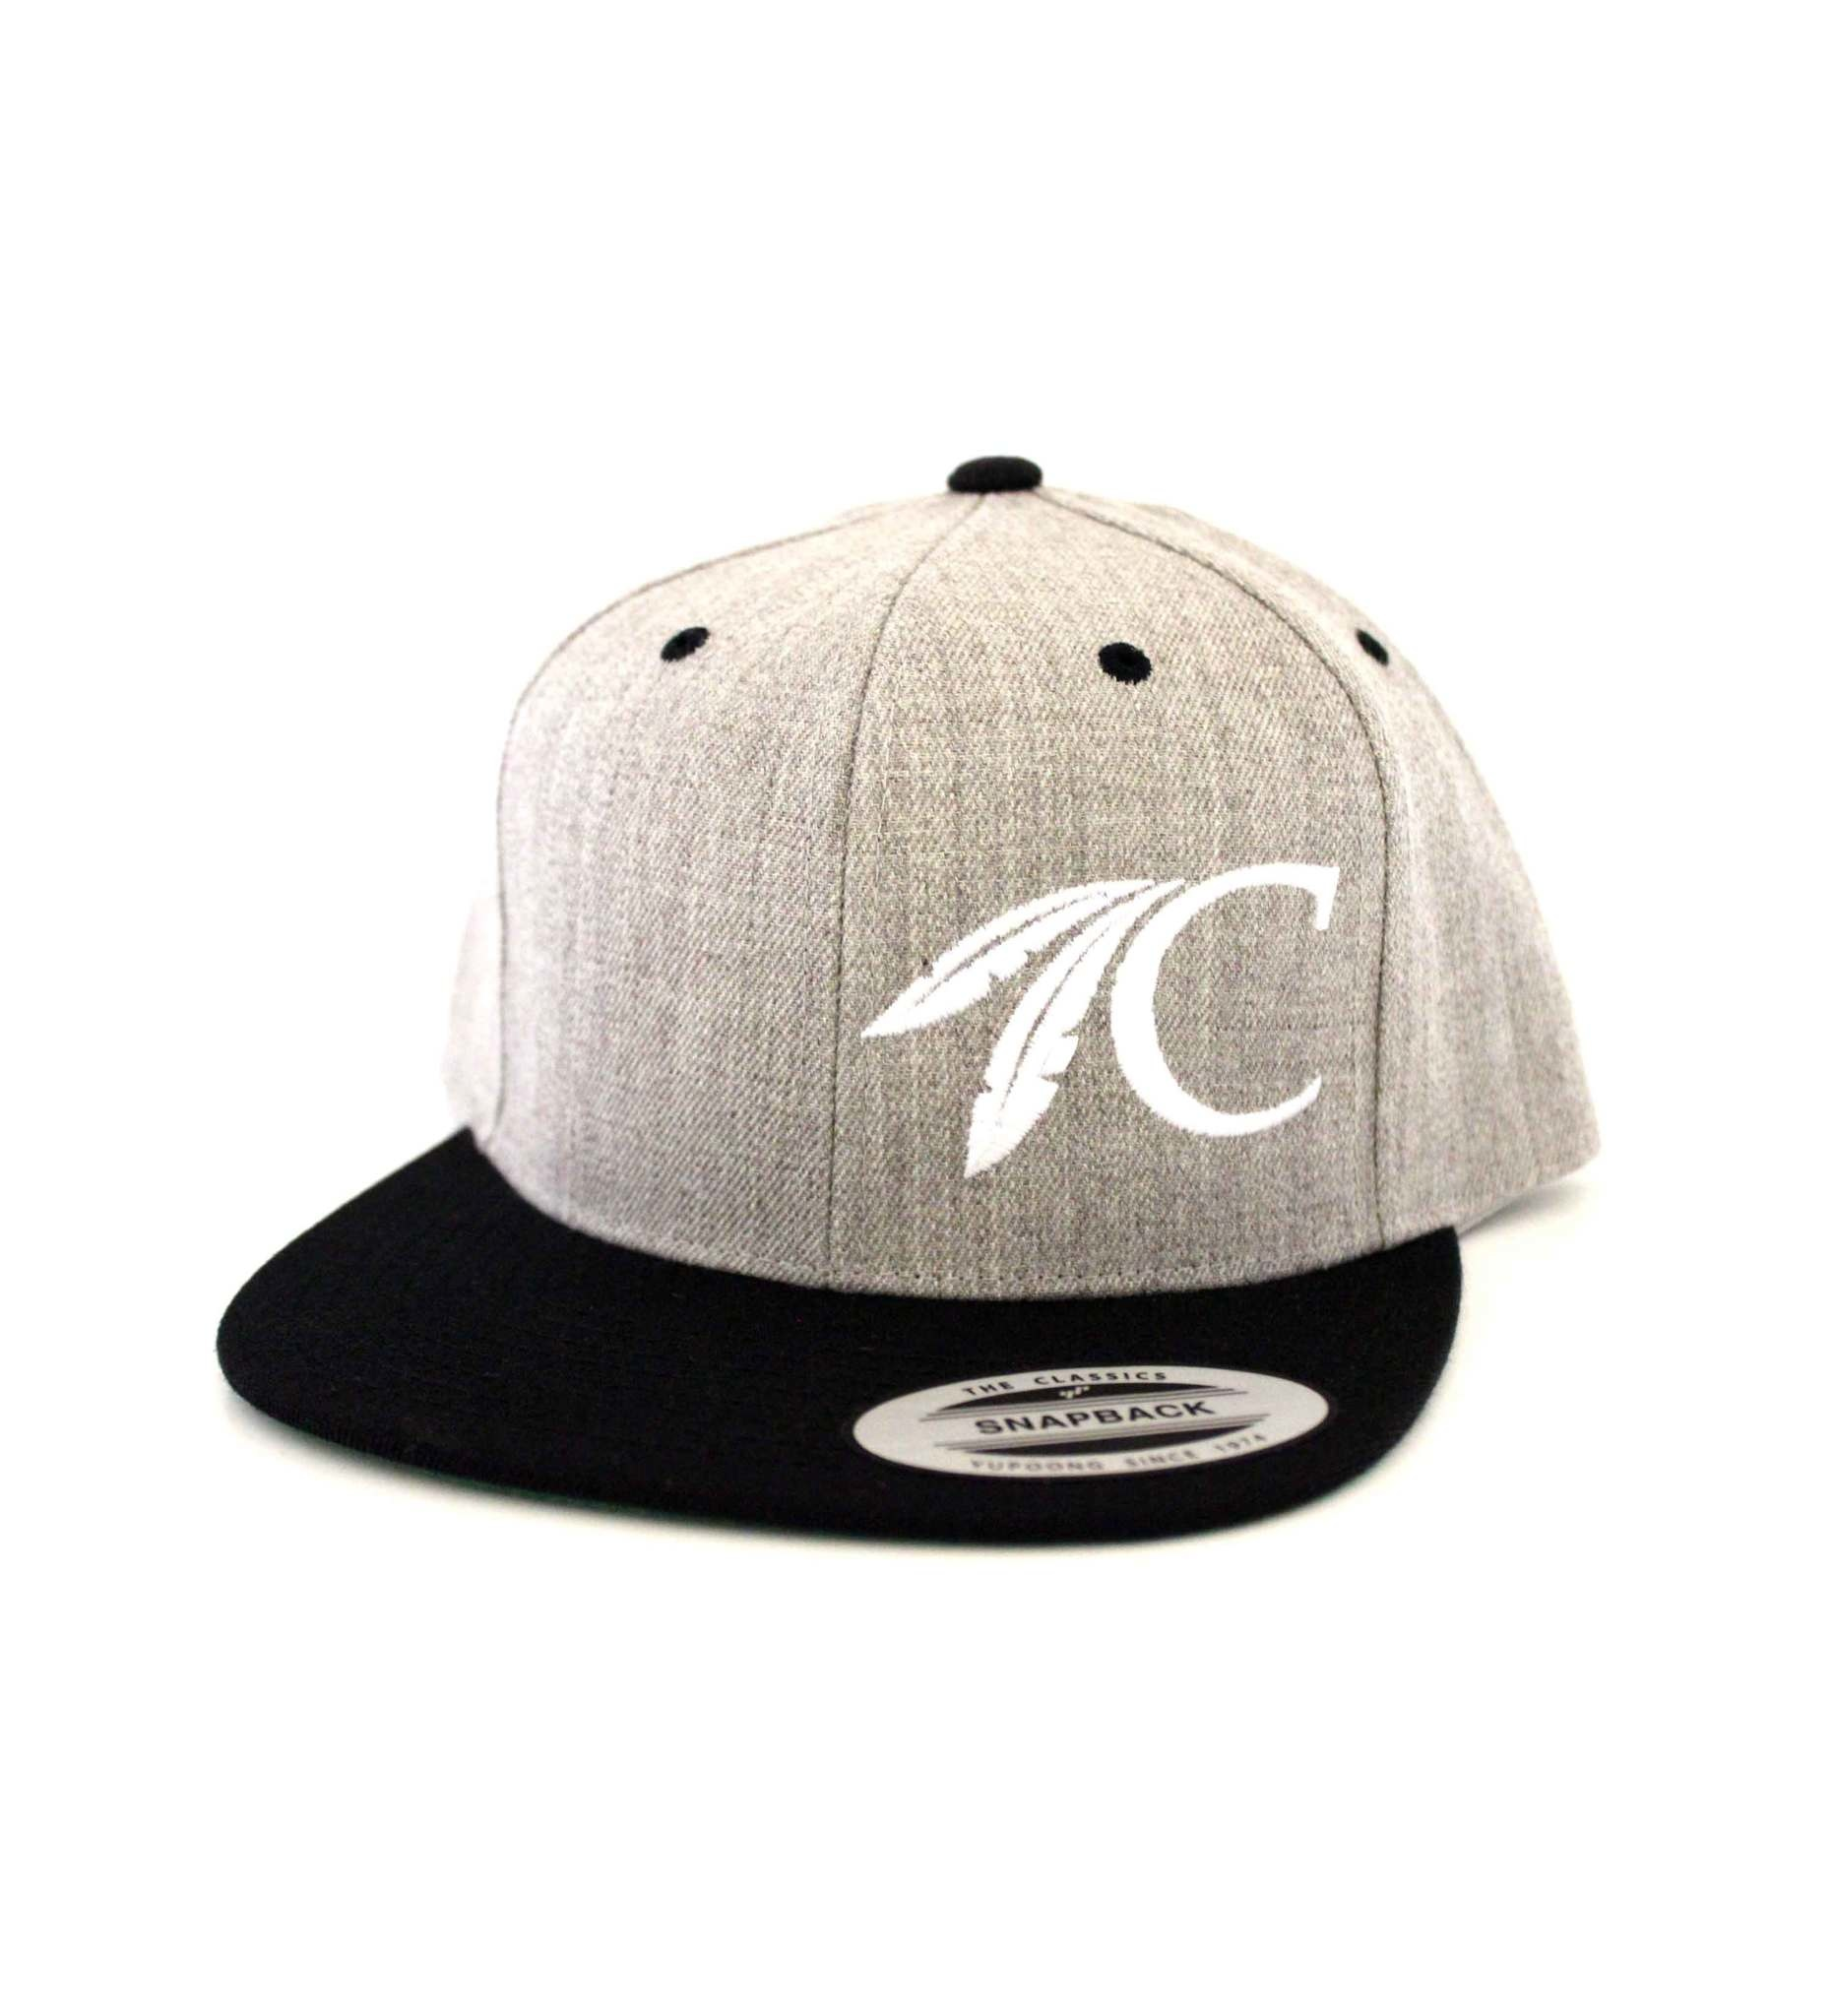 FLAT BILL Heather Grey & Black C FEATHER Cap